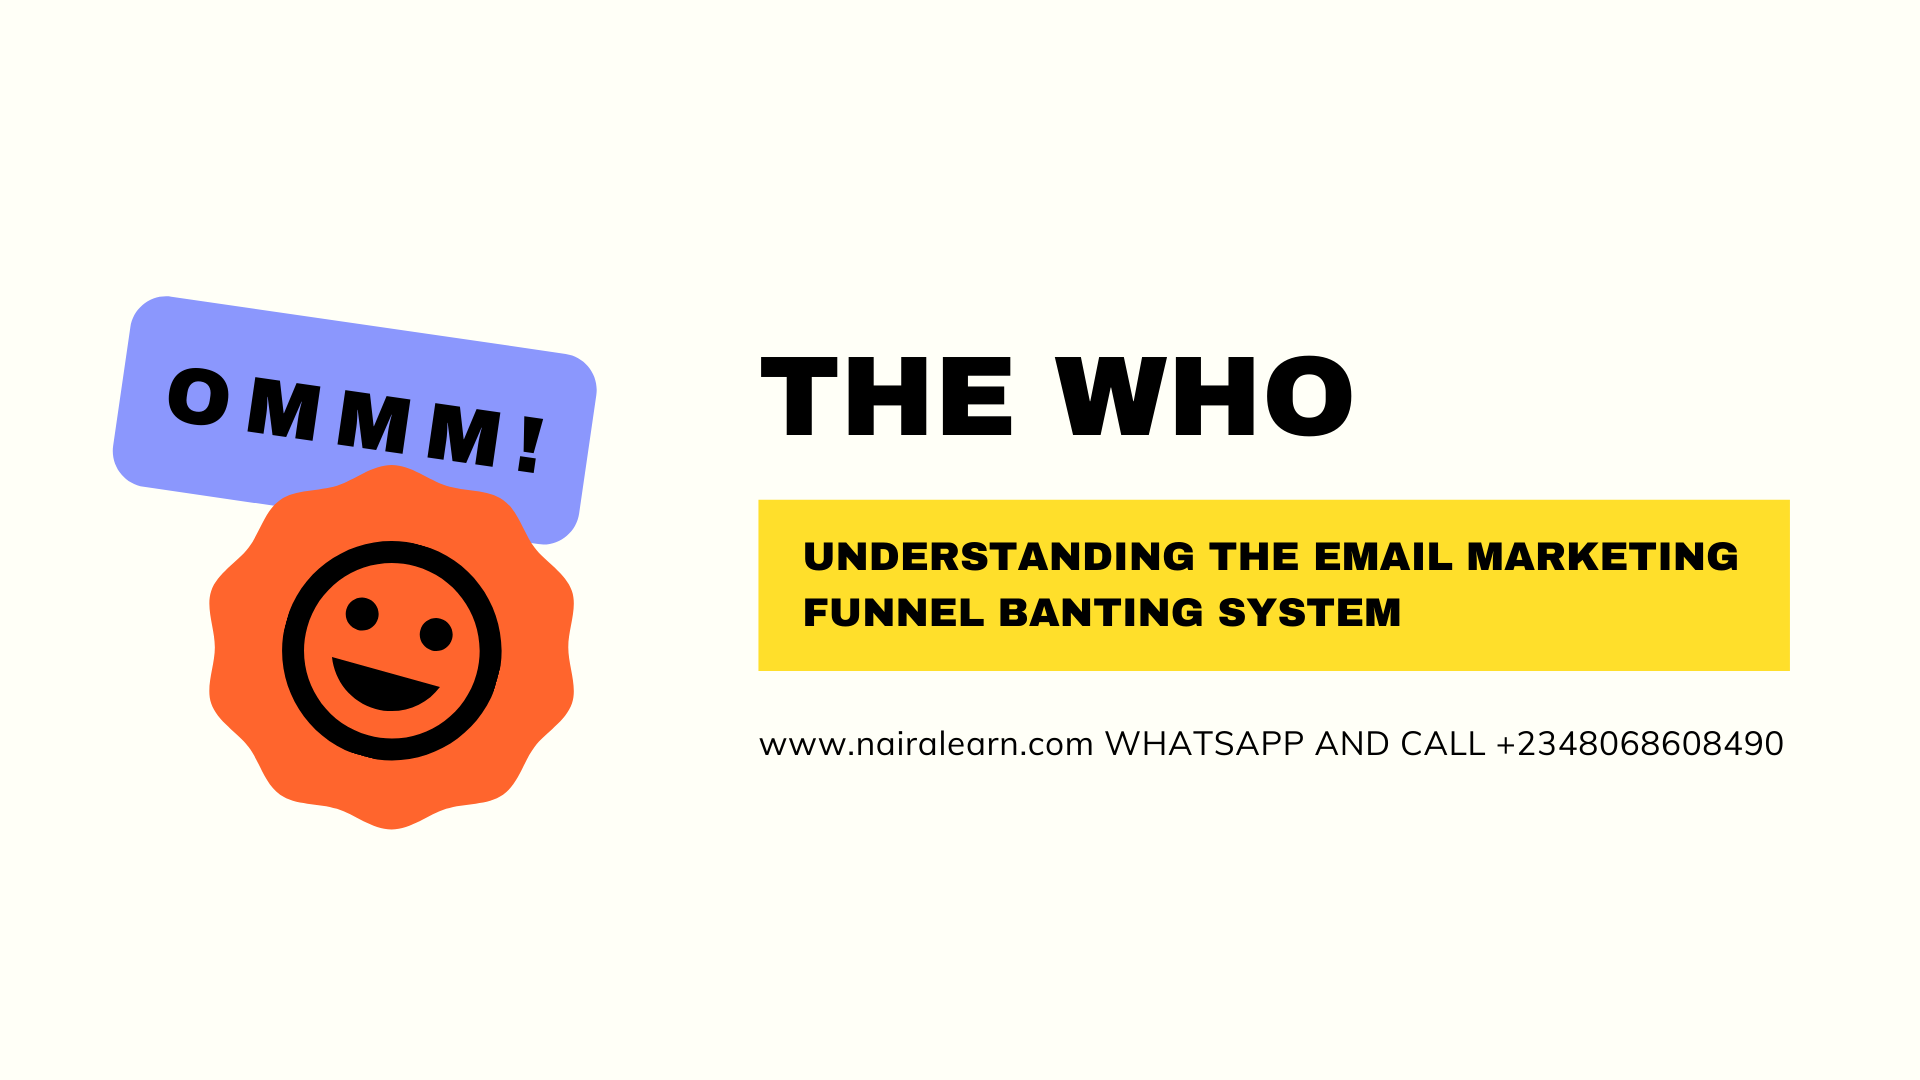 Understanding-The-Email-Marketing-Funnel-Banting-System1